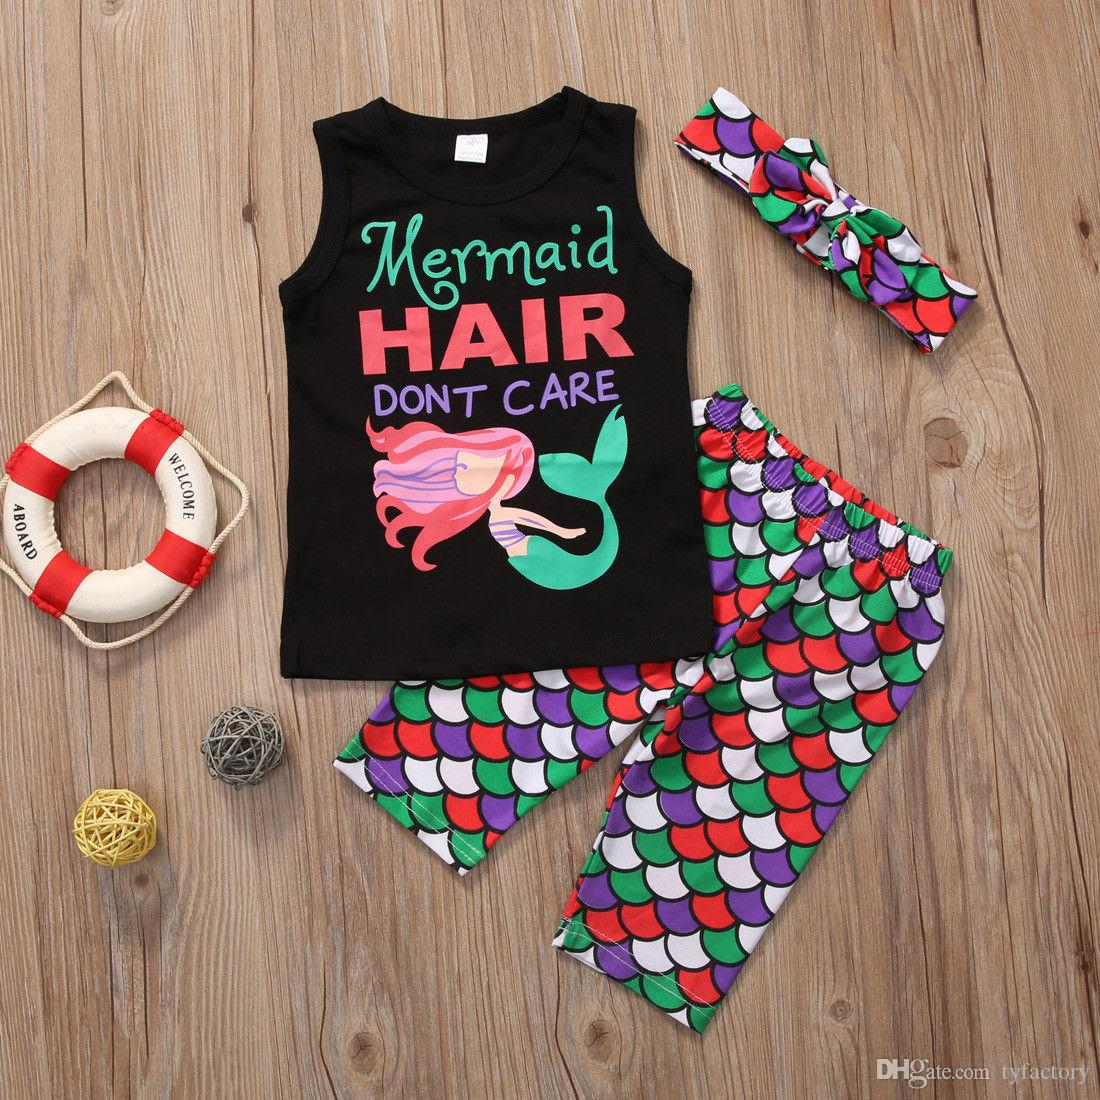 hot girl's cotton Toddler Kids Baby Girls T-shirt+Pants+Headband Outfits mermaid hair don't care funny words printed Set Clothes 1-6Y